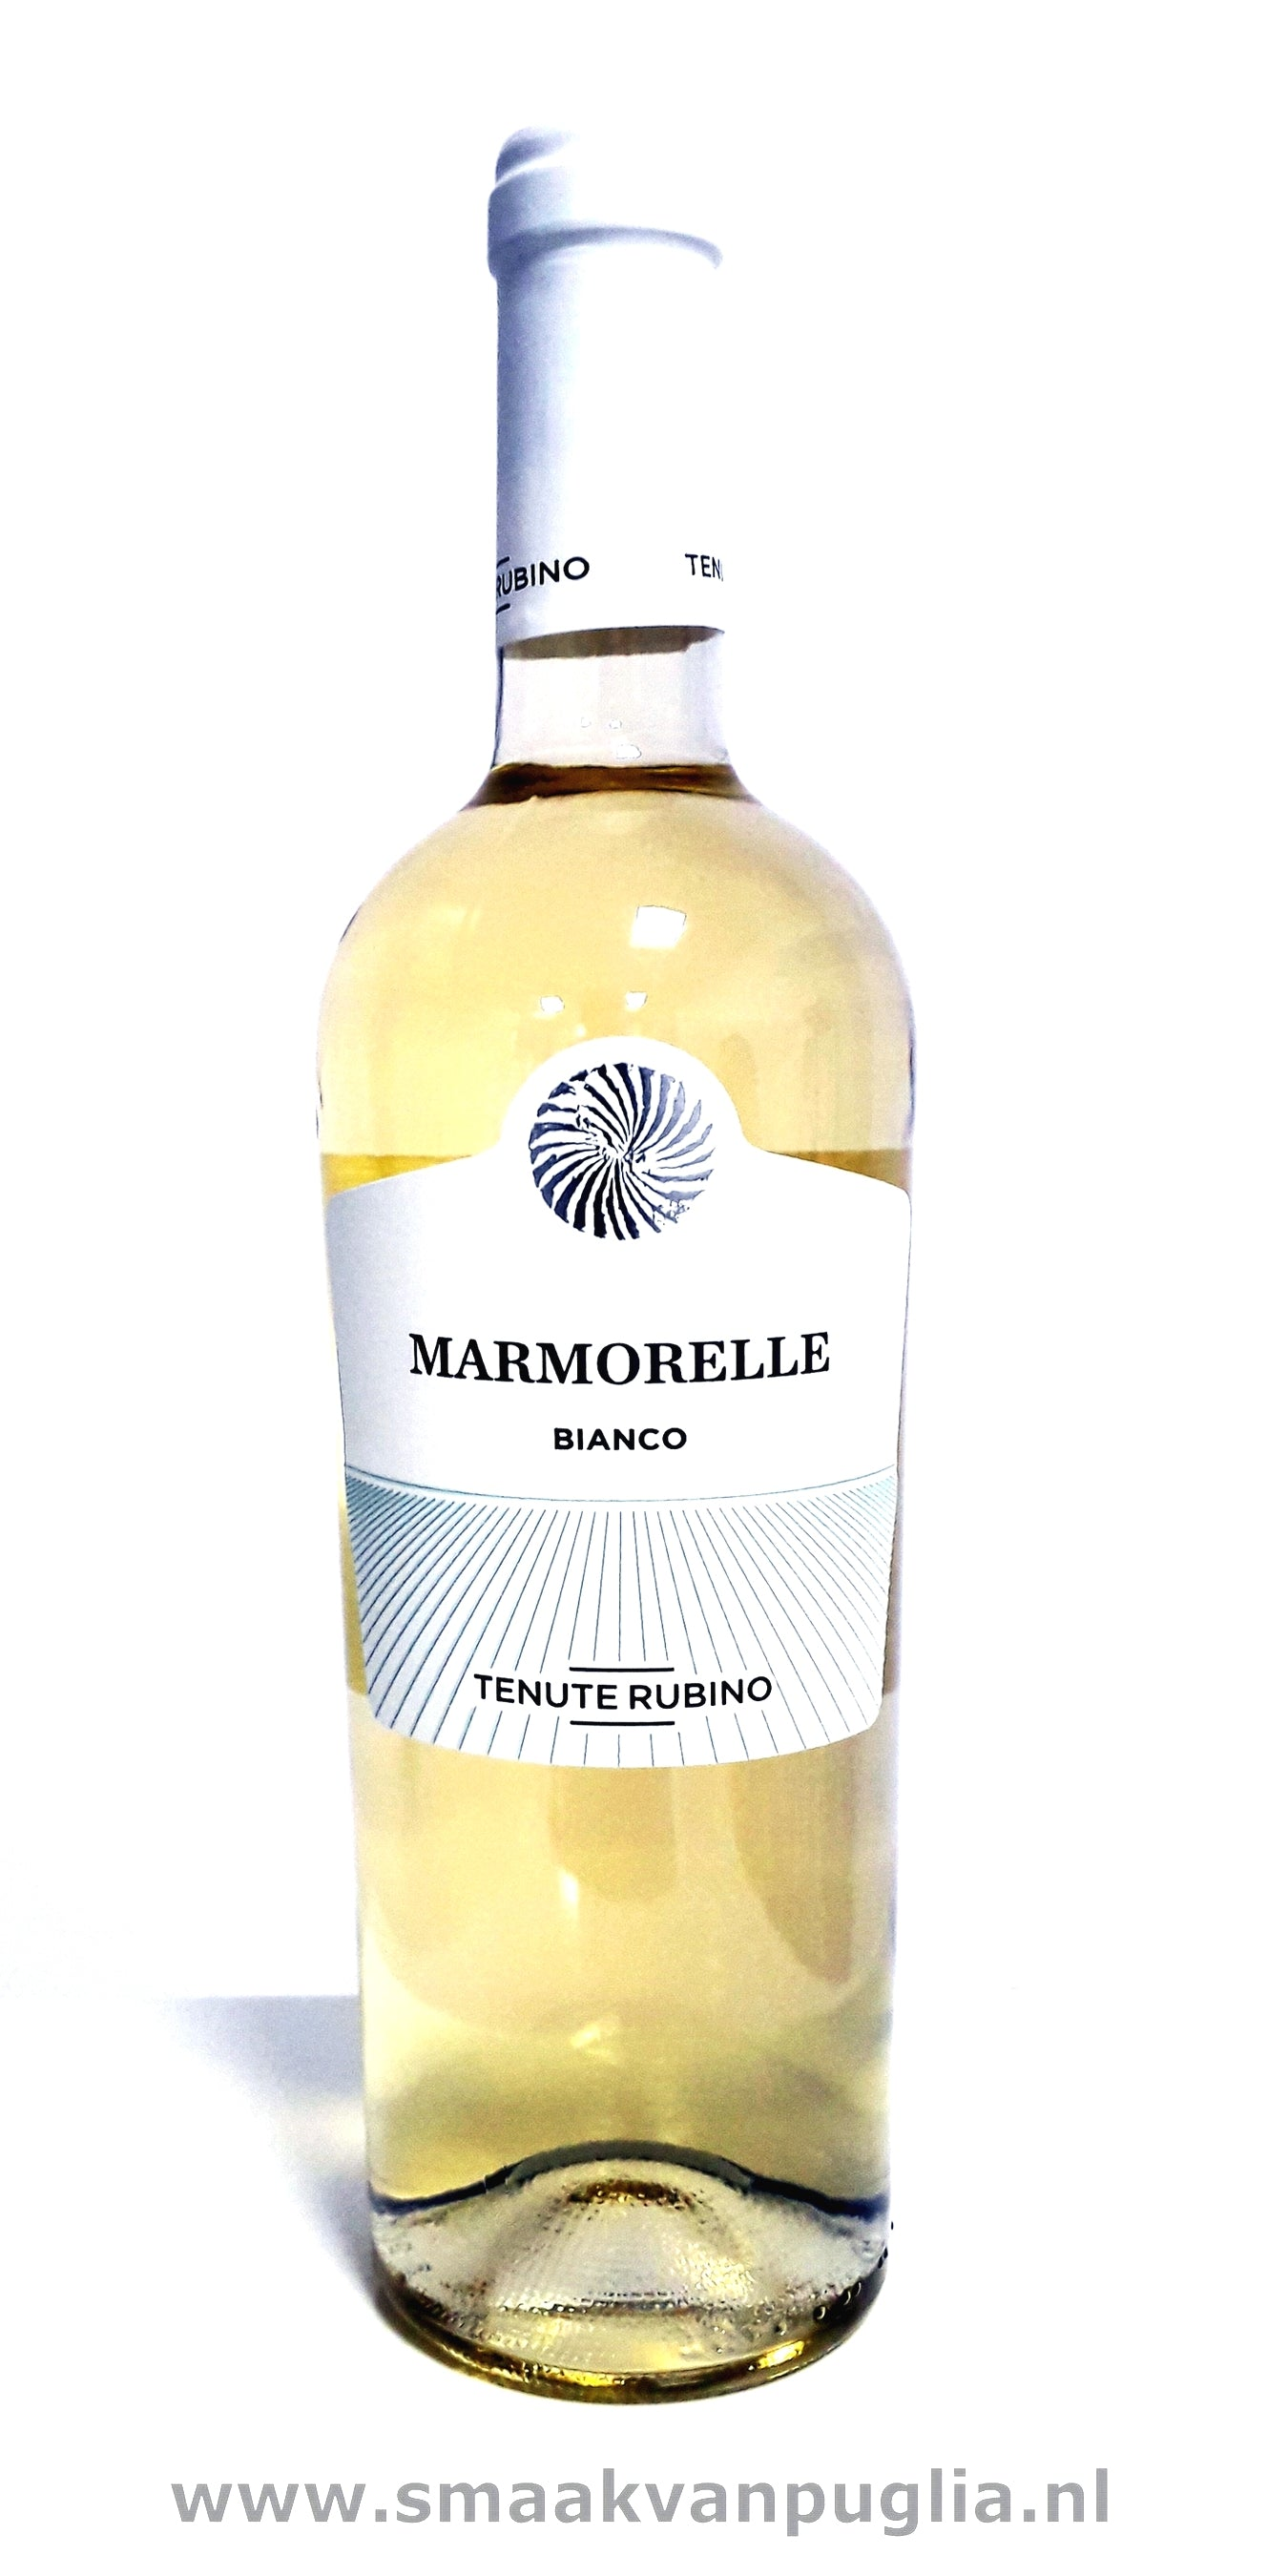 MARMORELLE BIANCO wit